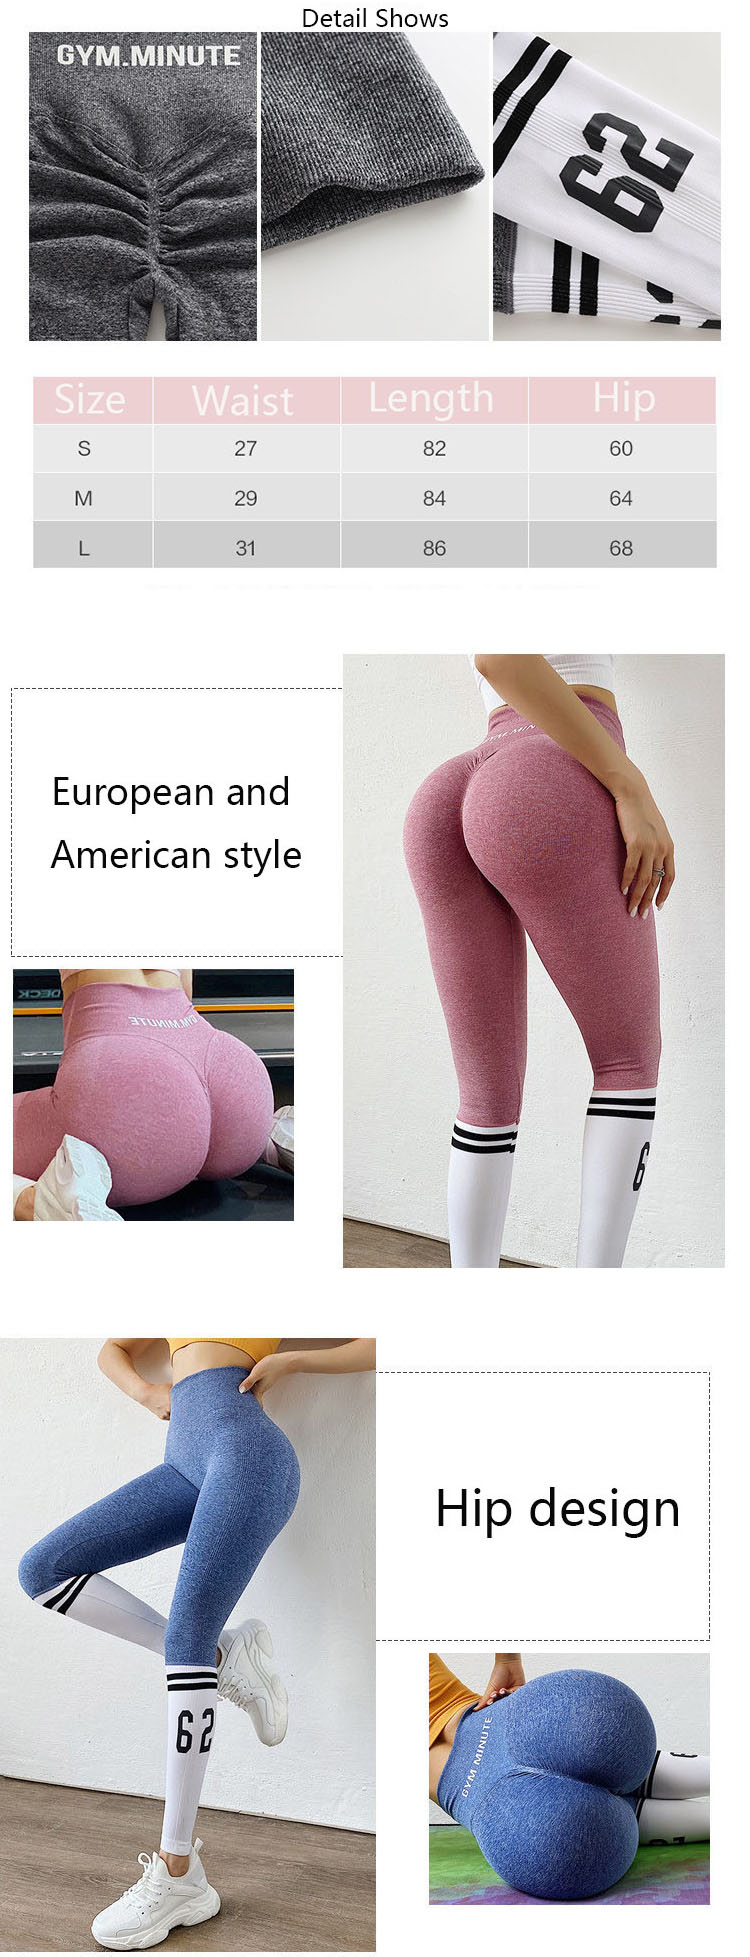 The use of structure is the top priority of yoga pants design